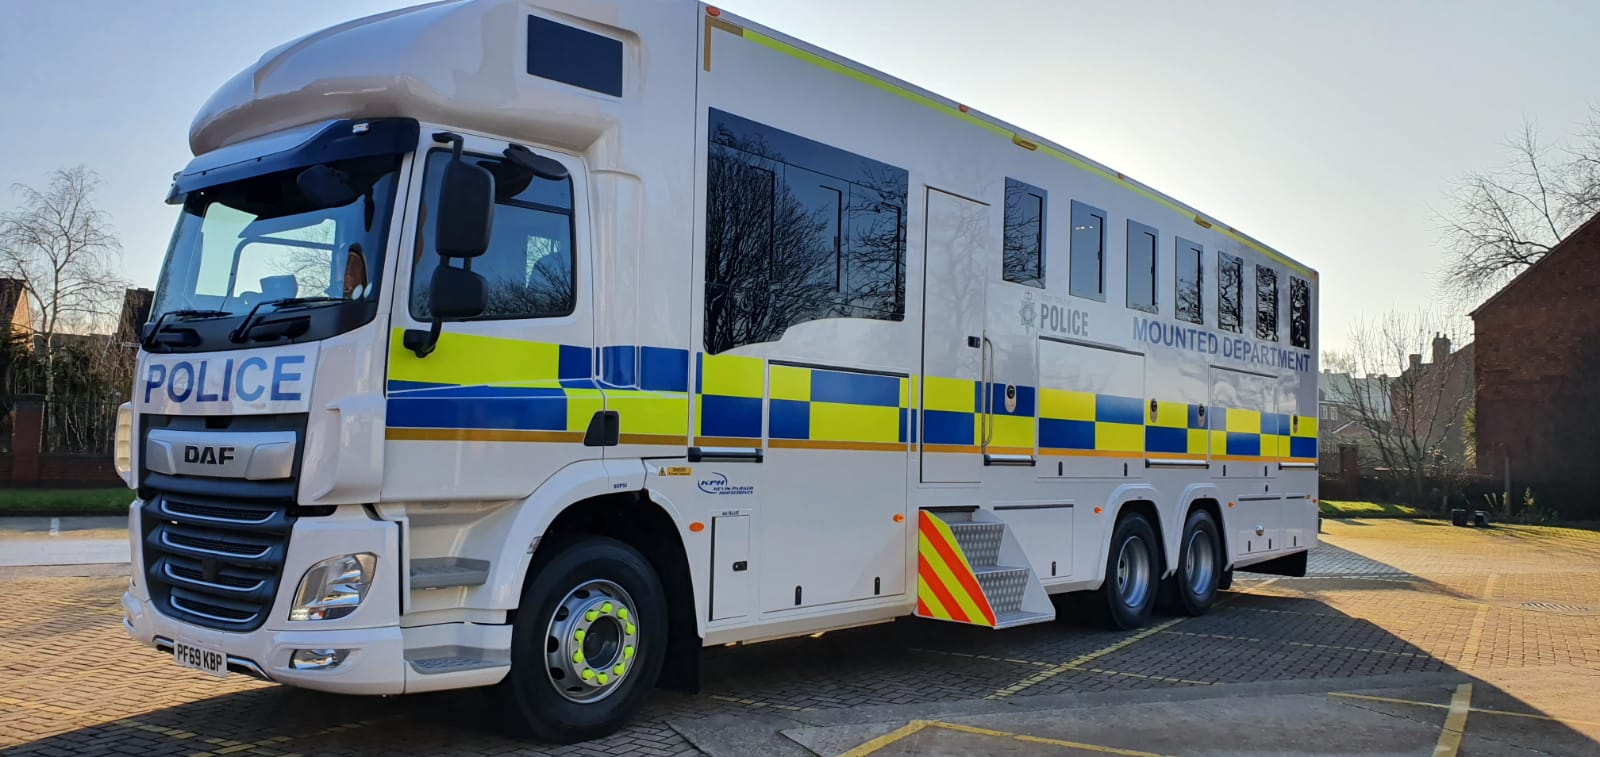 The new horsebox for our VIP horses